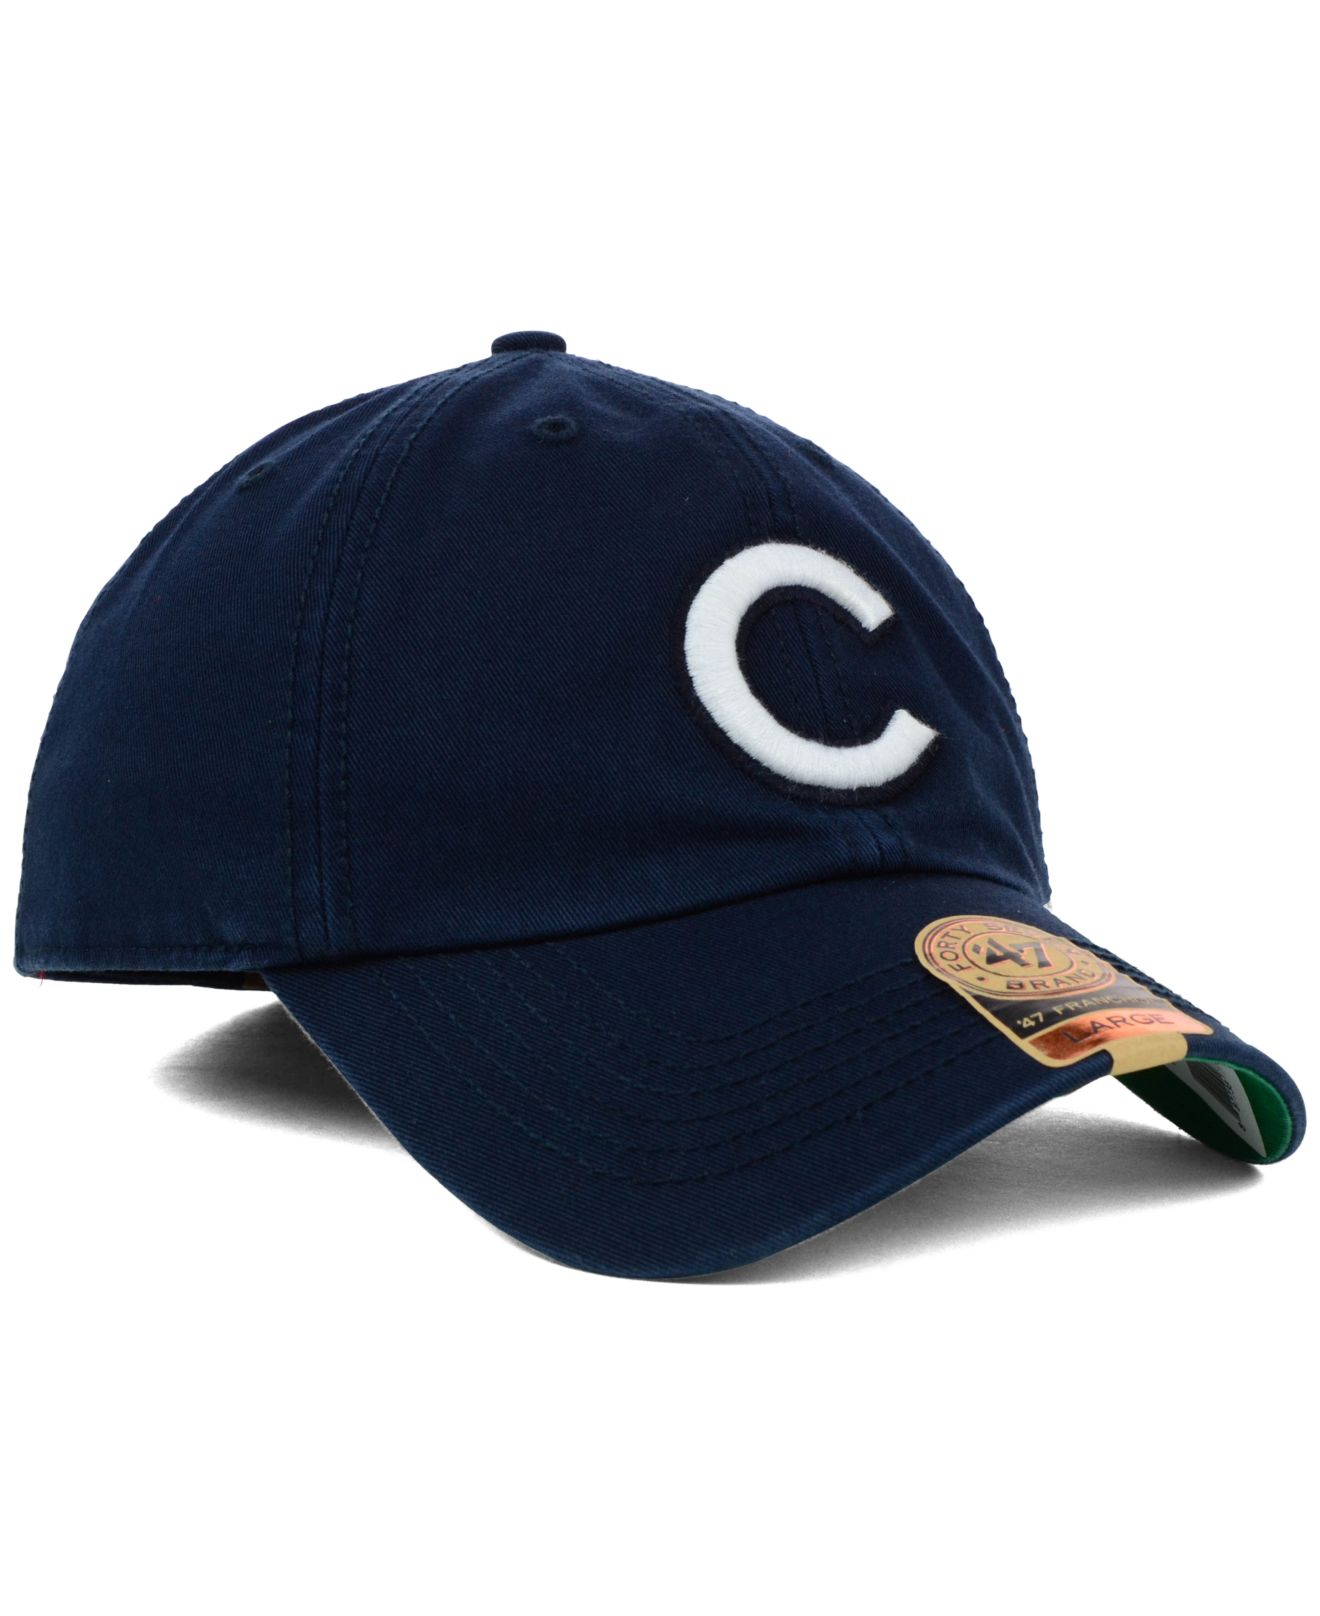 Lyst - 47 Brand Chicago Cubs Mlb Harbor Franchise Cap in Blue for Men addc03e0adc0